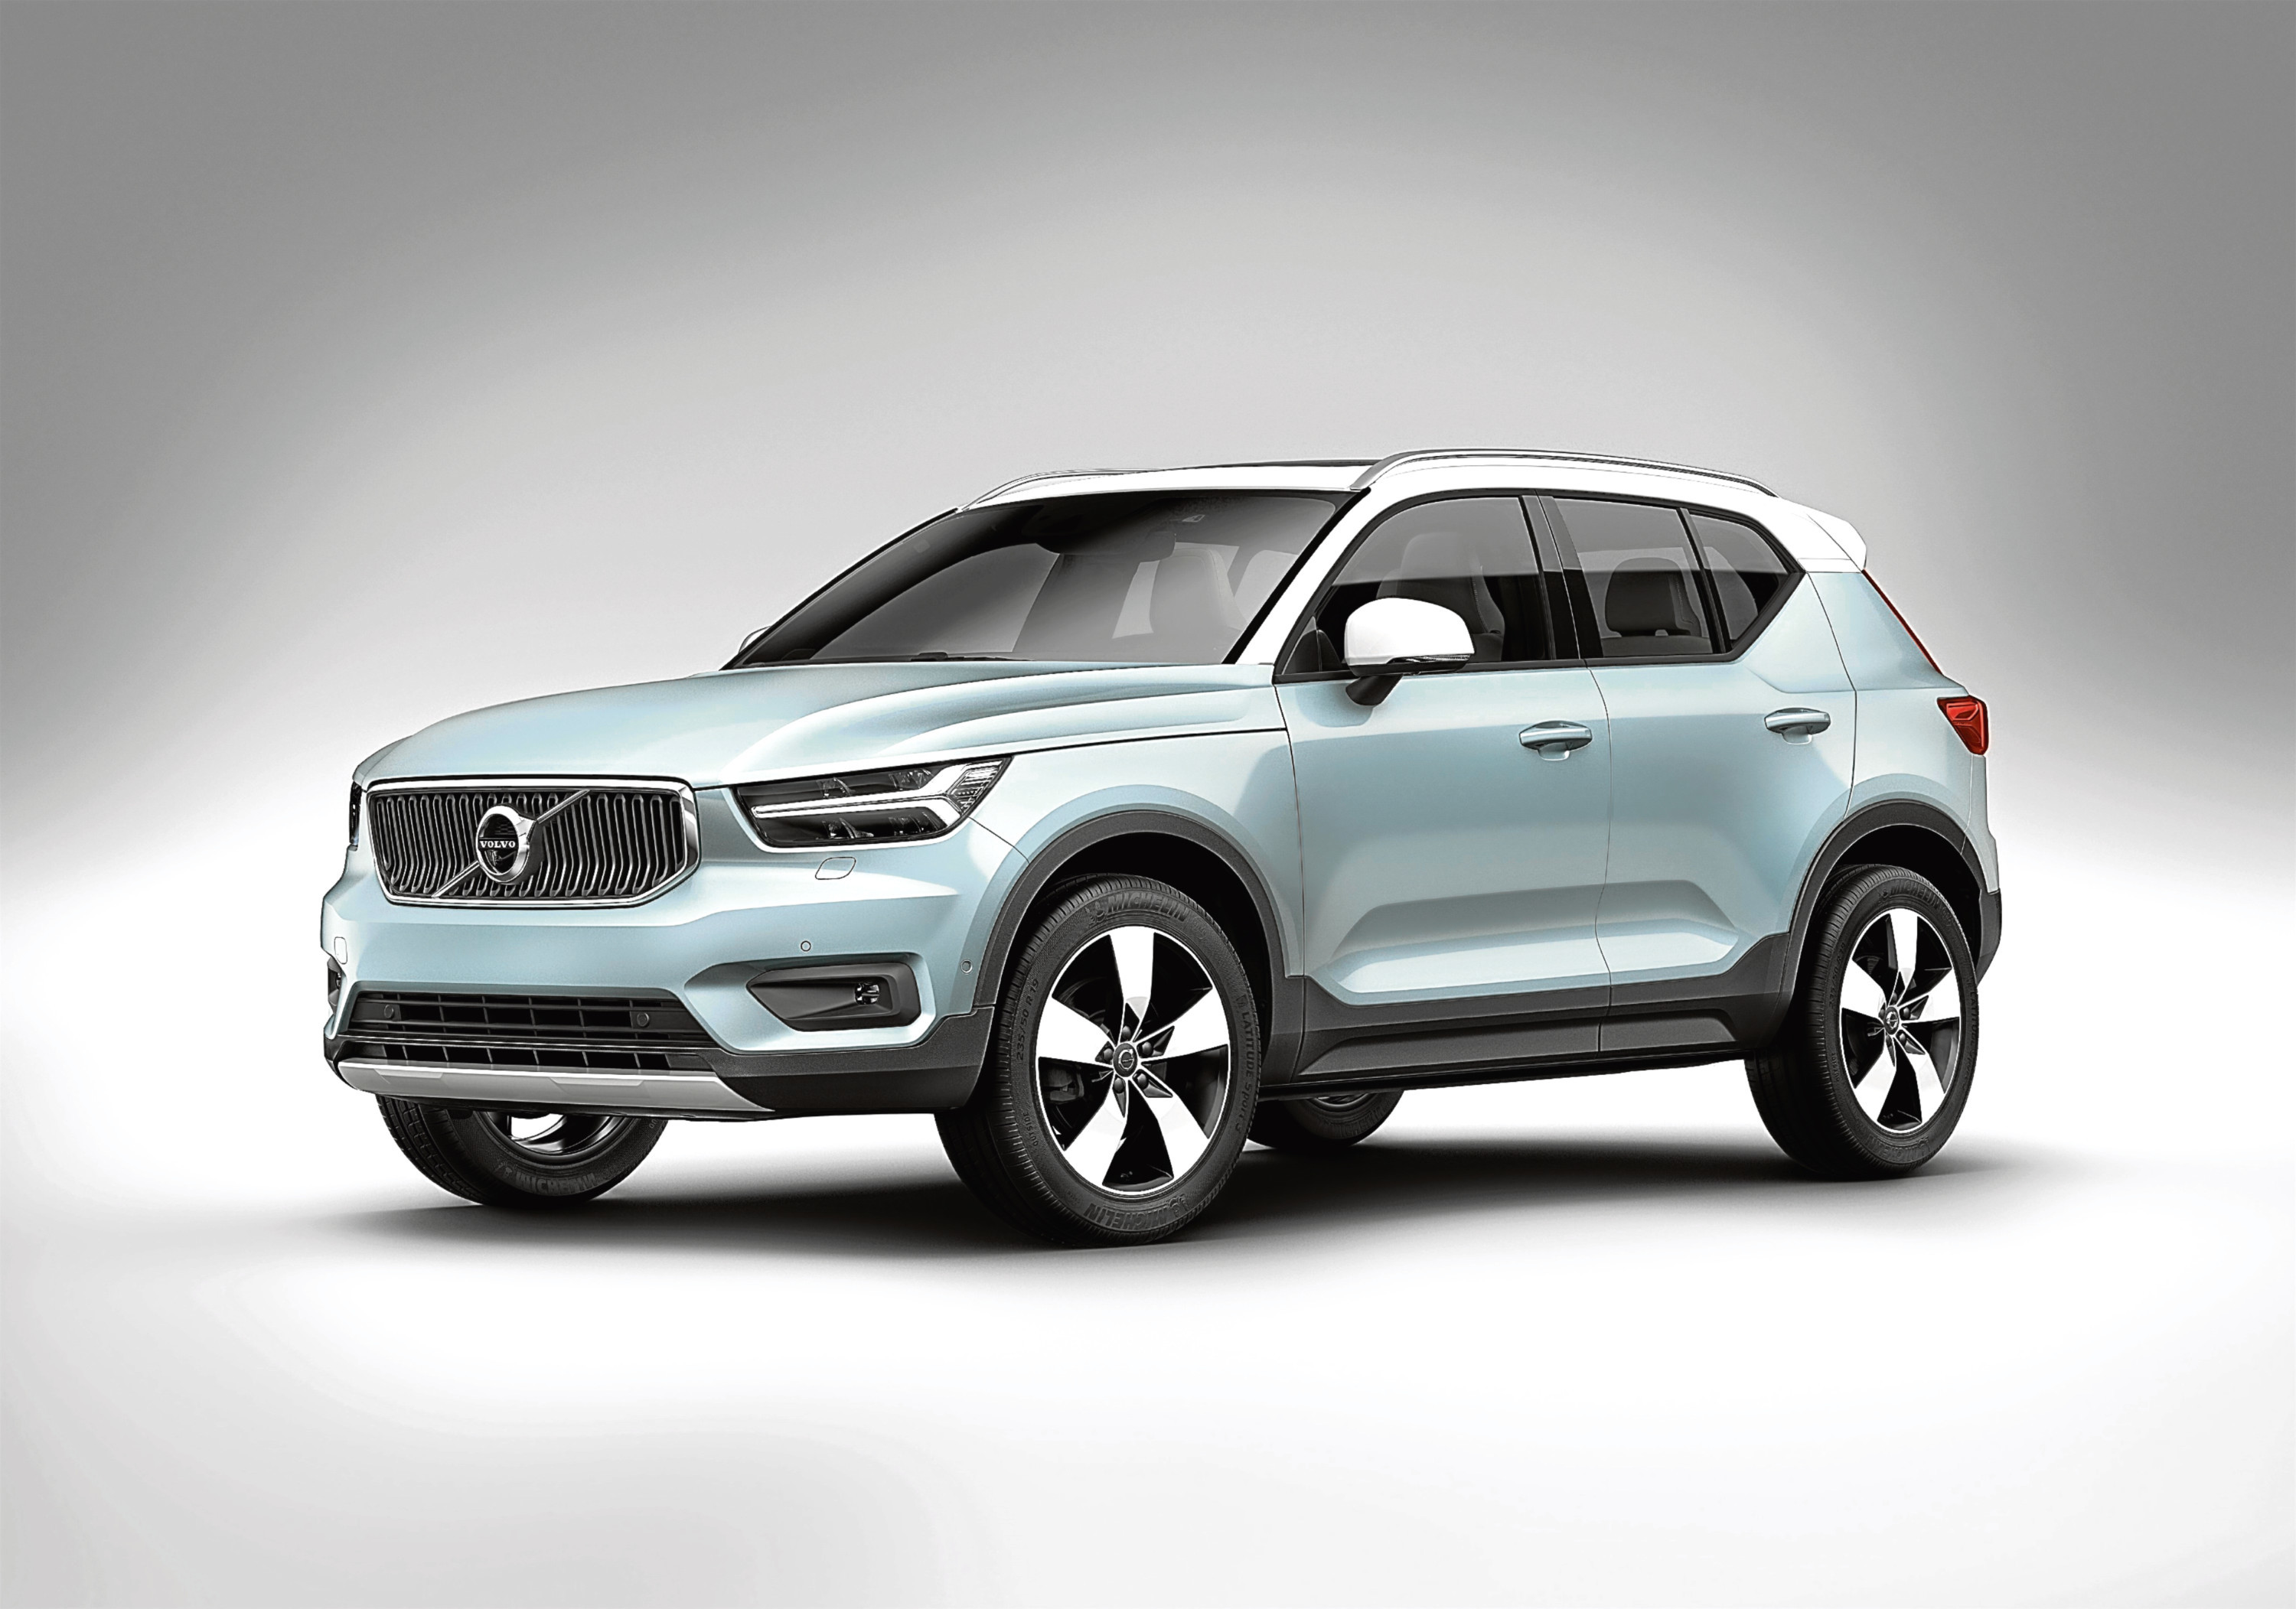 volvo releases premium xc40 compact suv across uk the courier. Black Bedroom Furniture Sets. Home Design Ideas